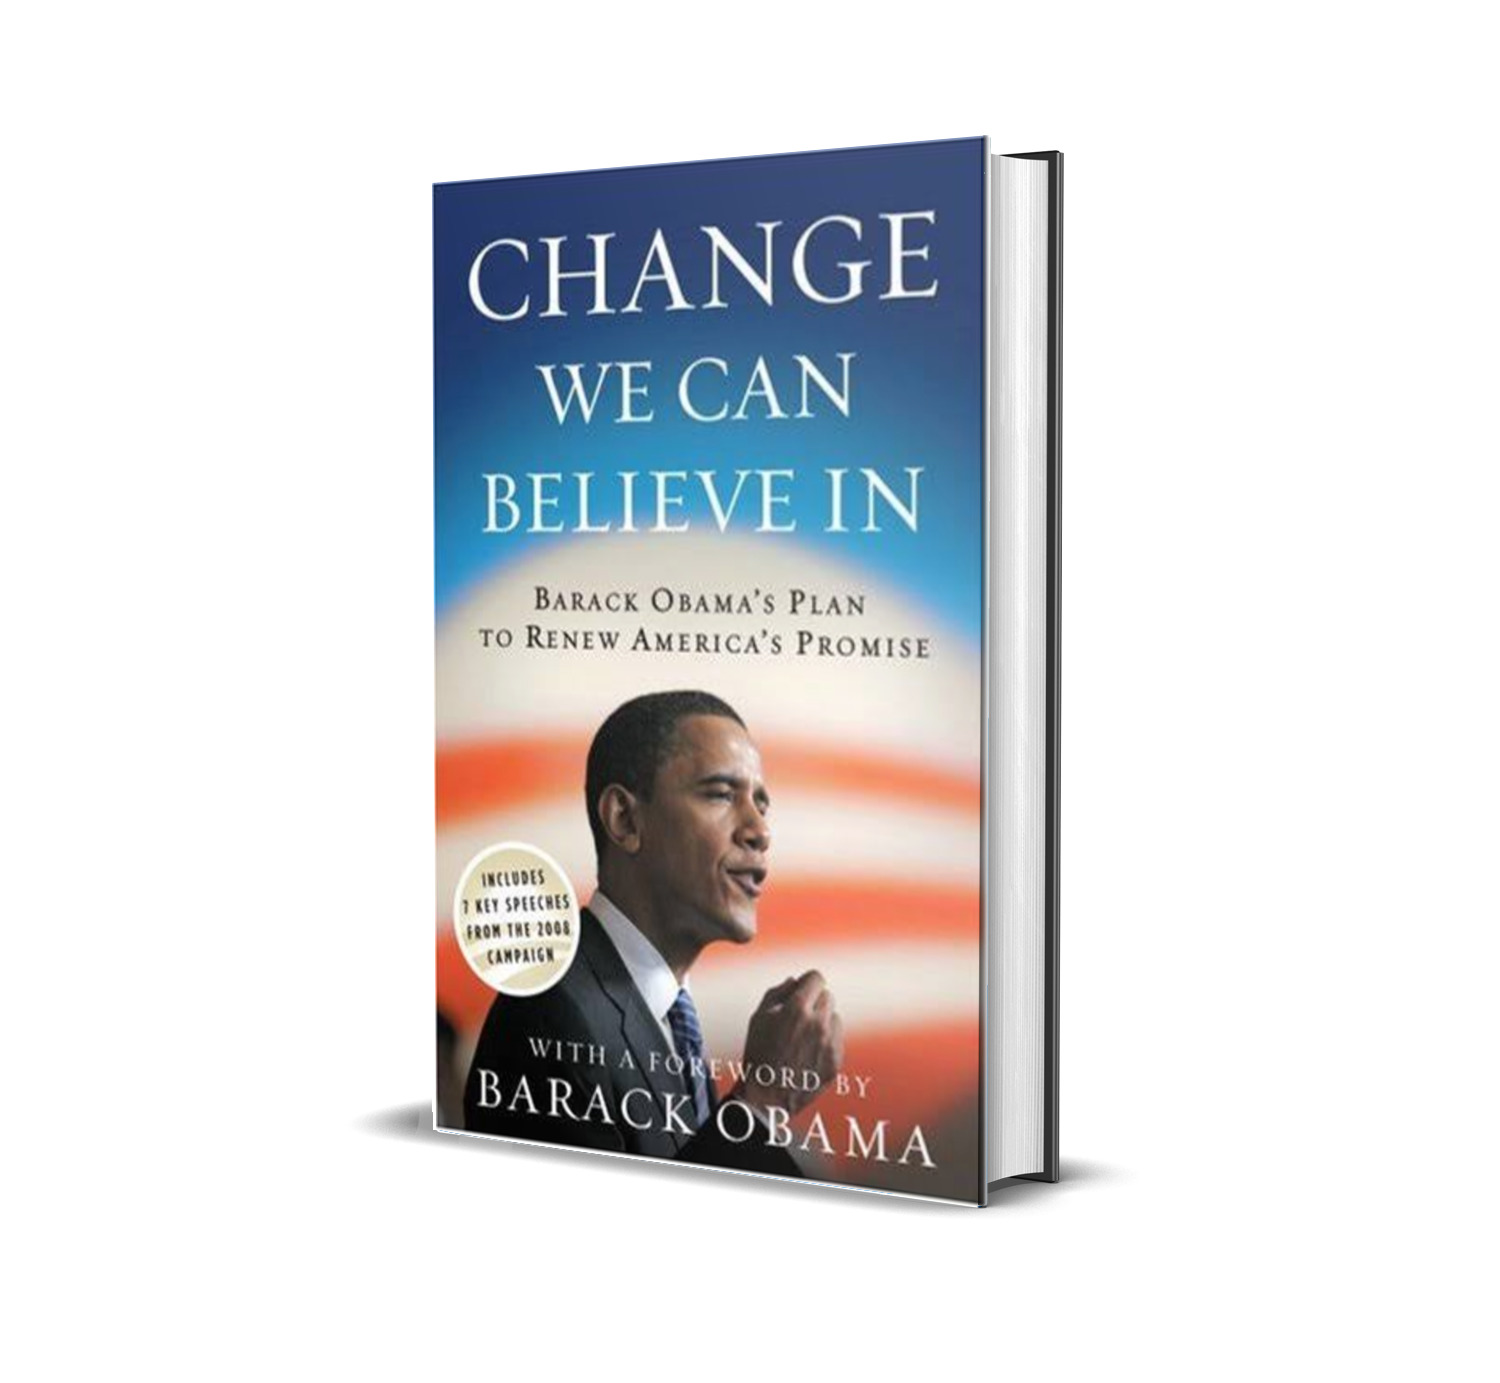 Change we can believe in- Barack Obama